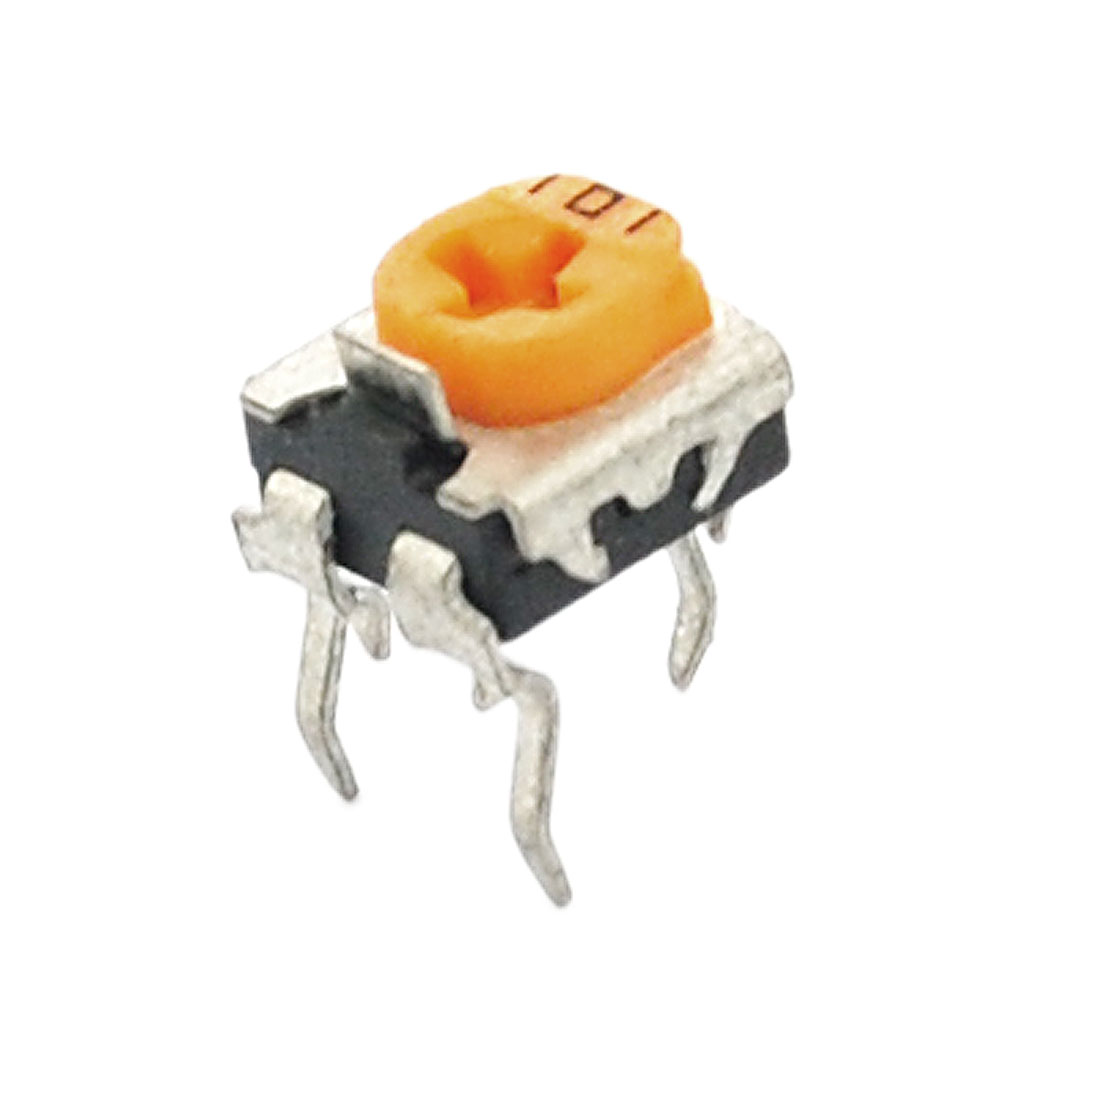 100 Pcs 101 100 ohm Variable Resistor Trimmer Potentiometers